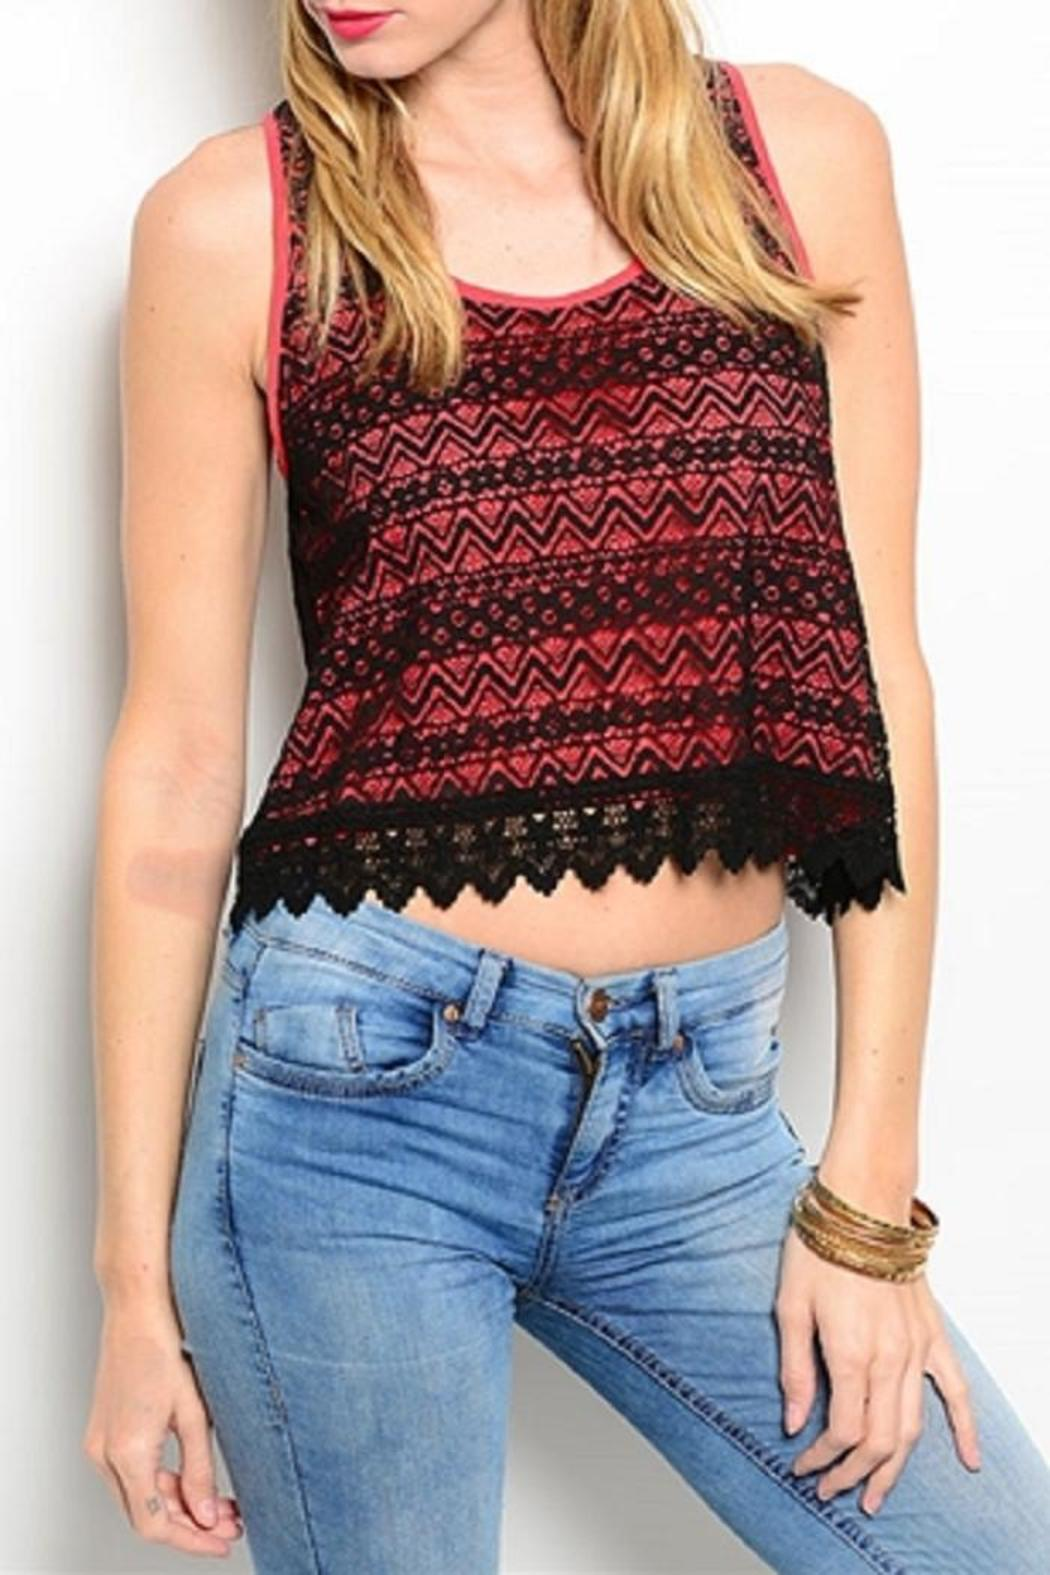 Adore Clothes & More Coral Lace Top - Main Image